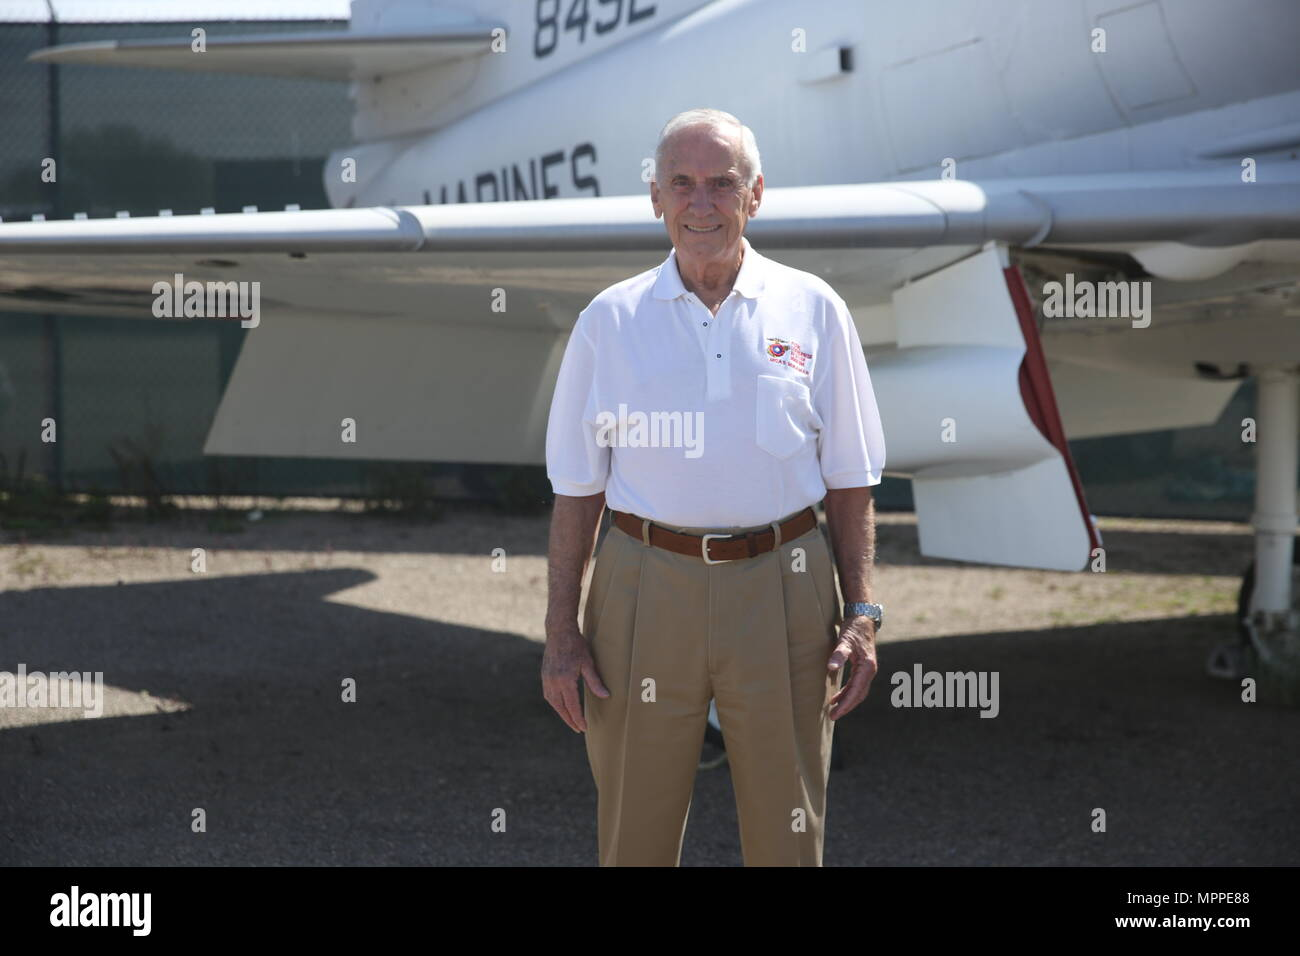 Retired Maj. Gen. Bobby Butcher stands beside a Douglas A-4C Skyhawk at The Flying Leatherneck Aviation Museum just outside Marine Corps Air Station Miramar, Calif., April 6. Butcher flew the Skyhawk towards the end of his tour as a Vietnam pilot. (U.S. Marine Corps photo by Sgt. David Bickel/Released) Stock Photo